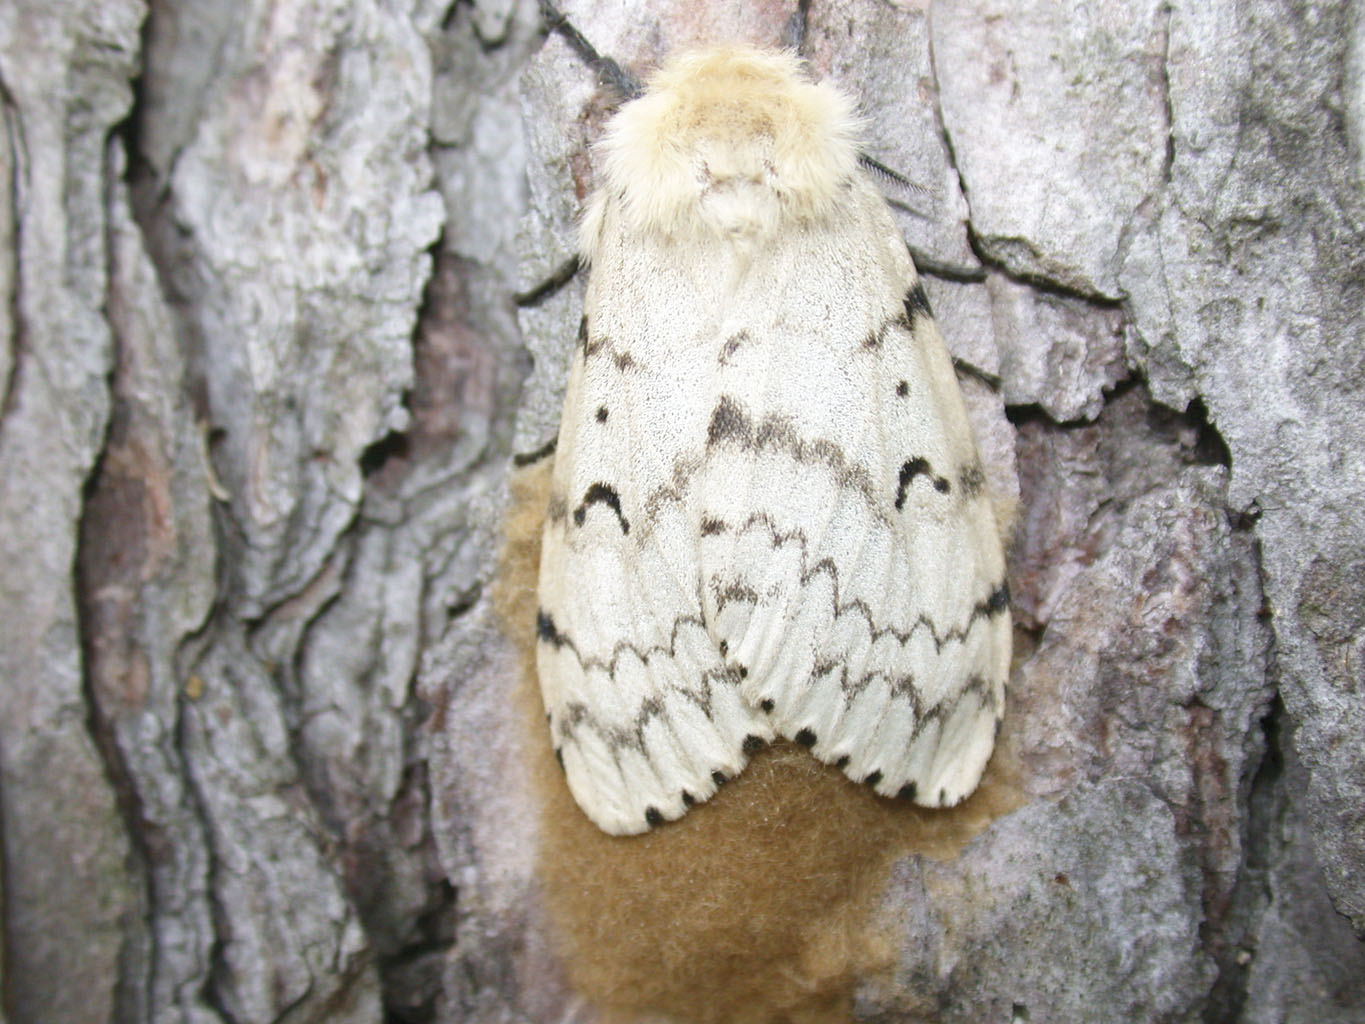 the european gypsy moth threat in chesapeake bay The gypsy moth caterpillar is the most serious threat to forests comprised of oak in the united states gypsy moths reach greatest densities where oaks are the most abundant trees if you have oak trees on your property, gypsy moths pose a threat to the beauty and value of your land.